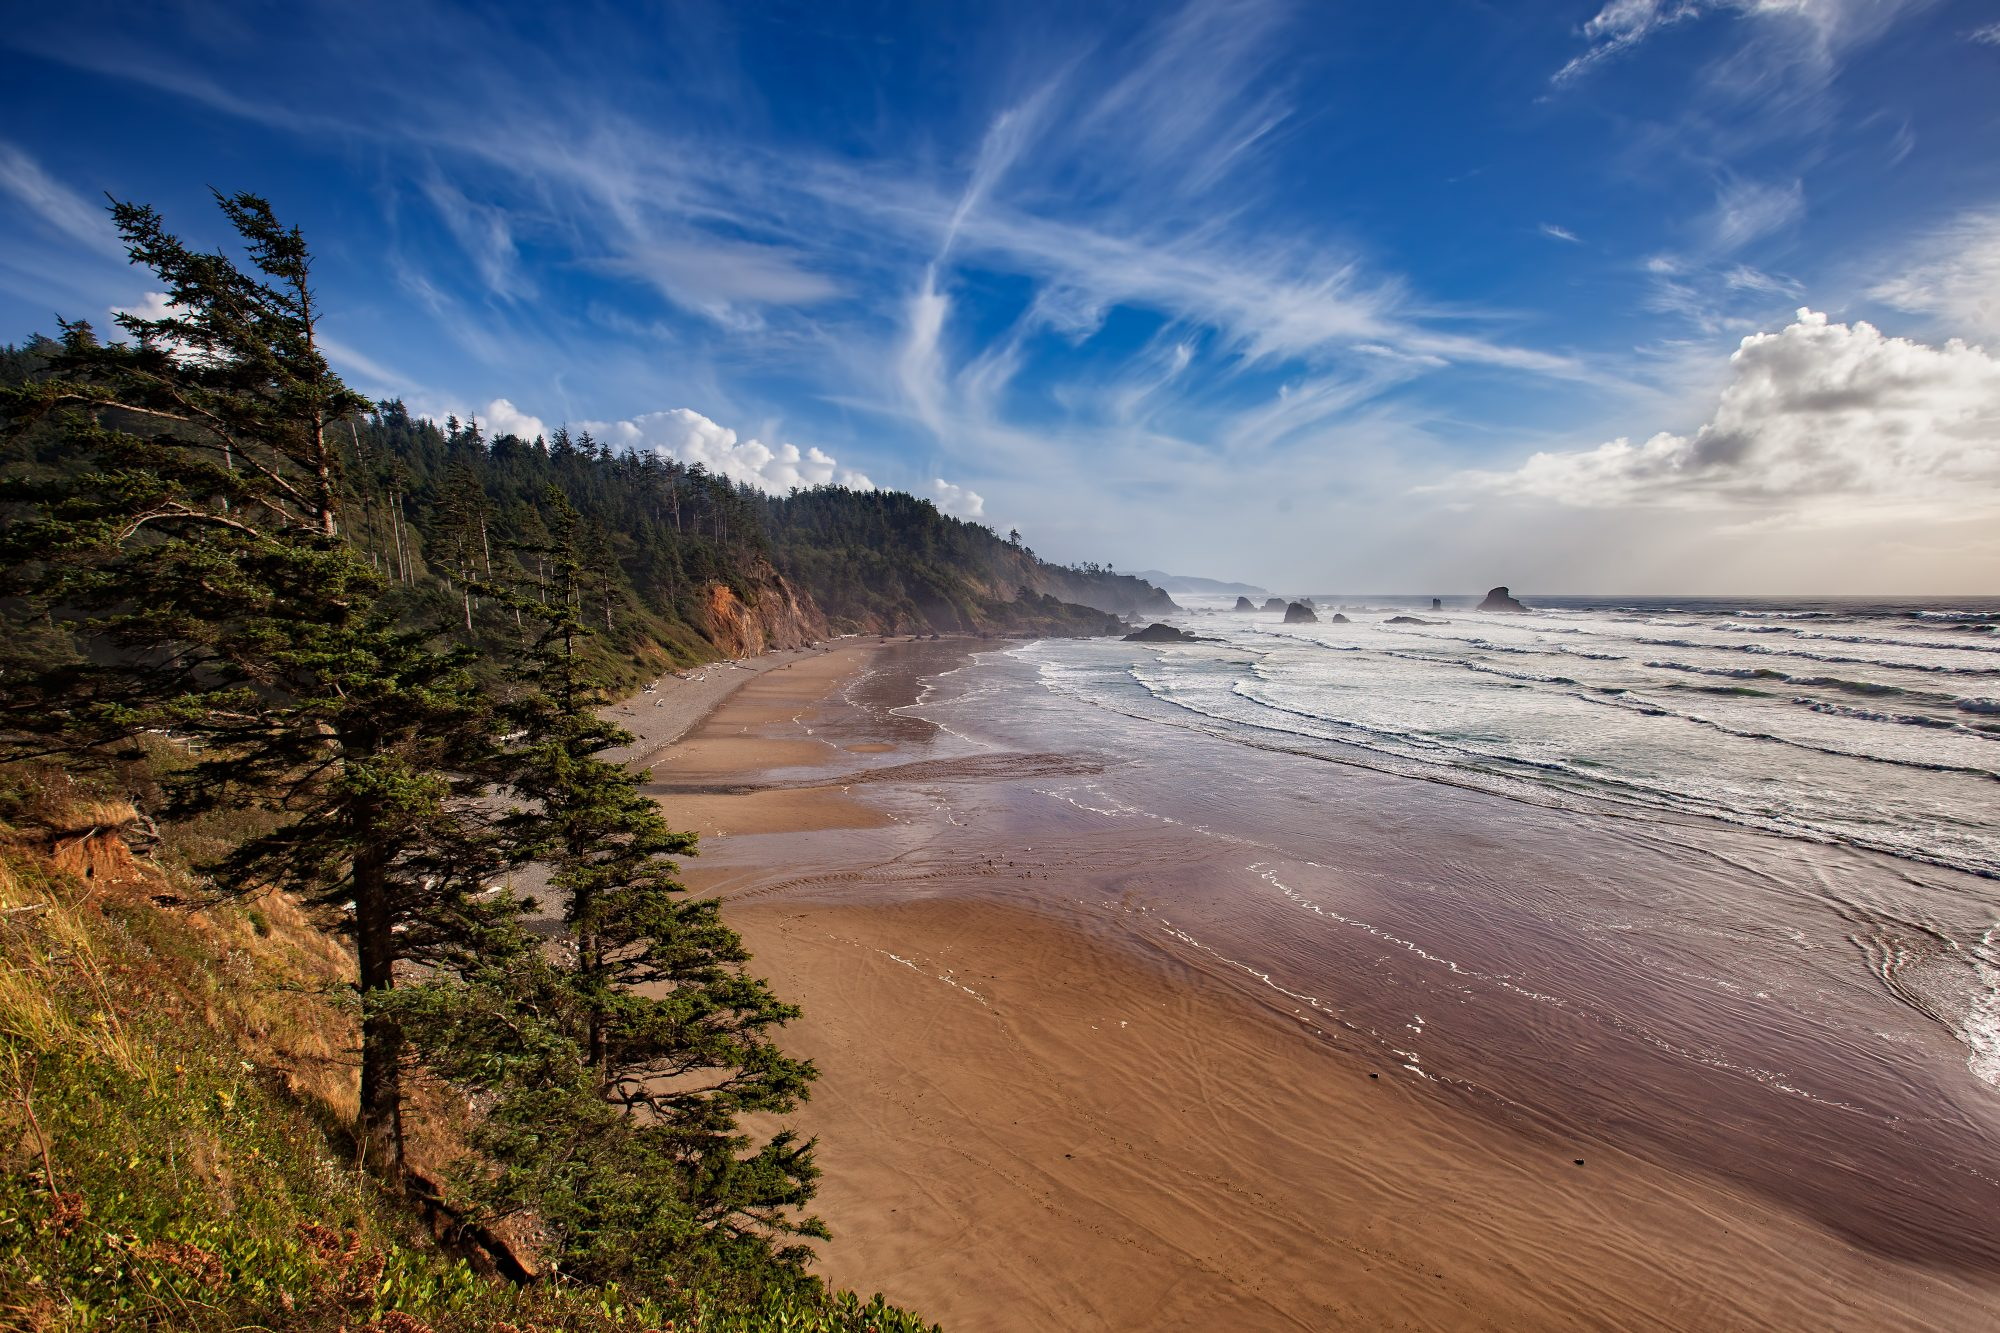 On a summer weekend you'll see lines of cars parked along Cannon Beach. Keep on driving. Head north into Ecola State Park, and follow a winding road through a Sitka spruce forest. Turn the corner and discover a secluded crescent beach and the Pacific beyond. Great for strolling, finding pretty pieces of driftwood, and checking out tide pools.